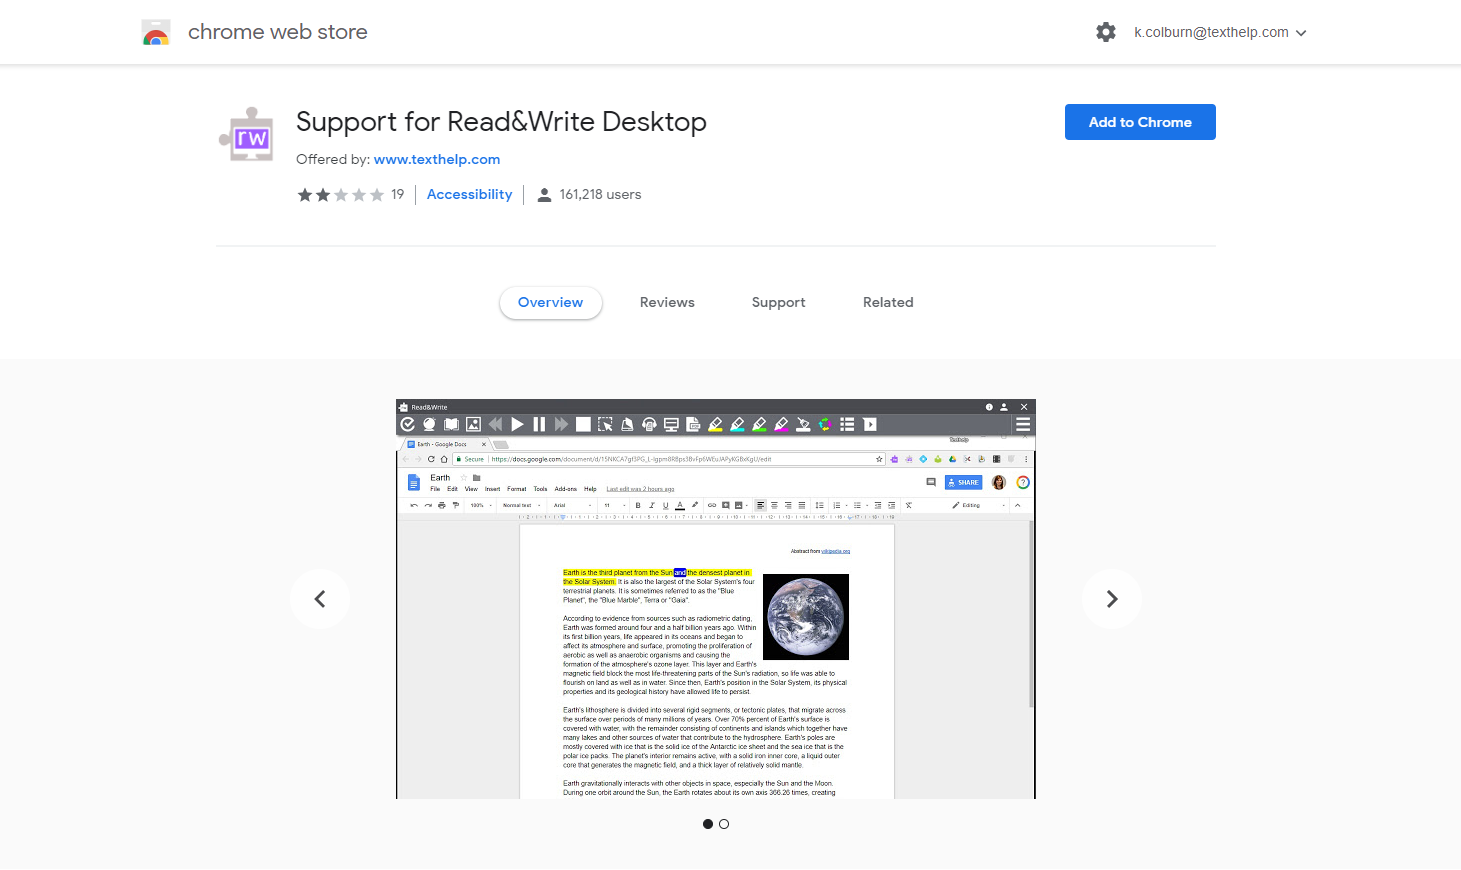 Using Read&Write for Windows with Google Chrome | Support